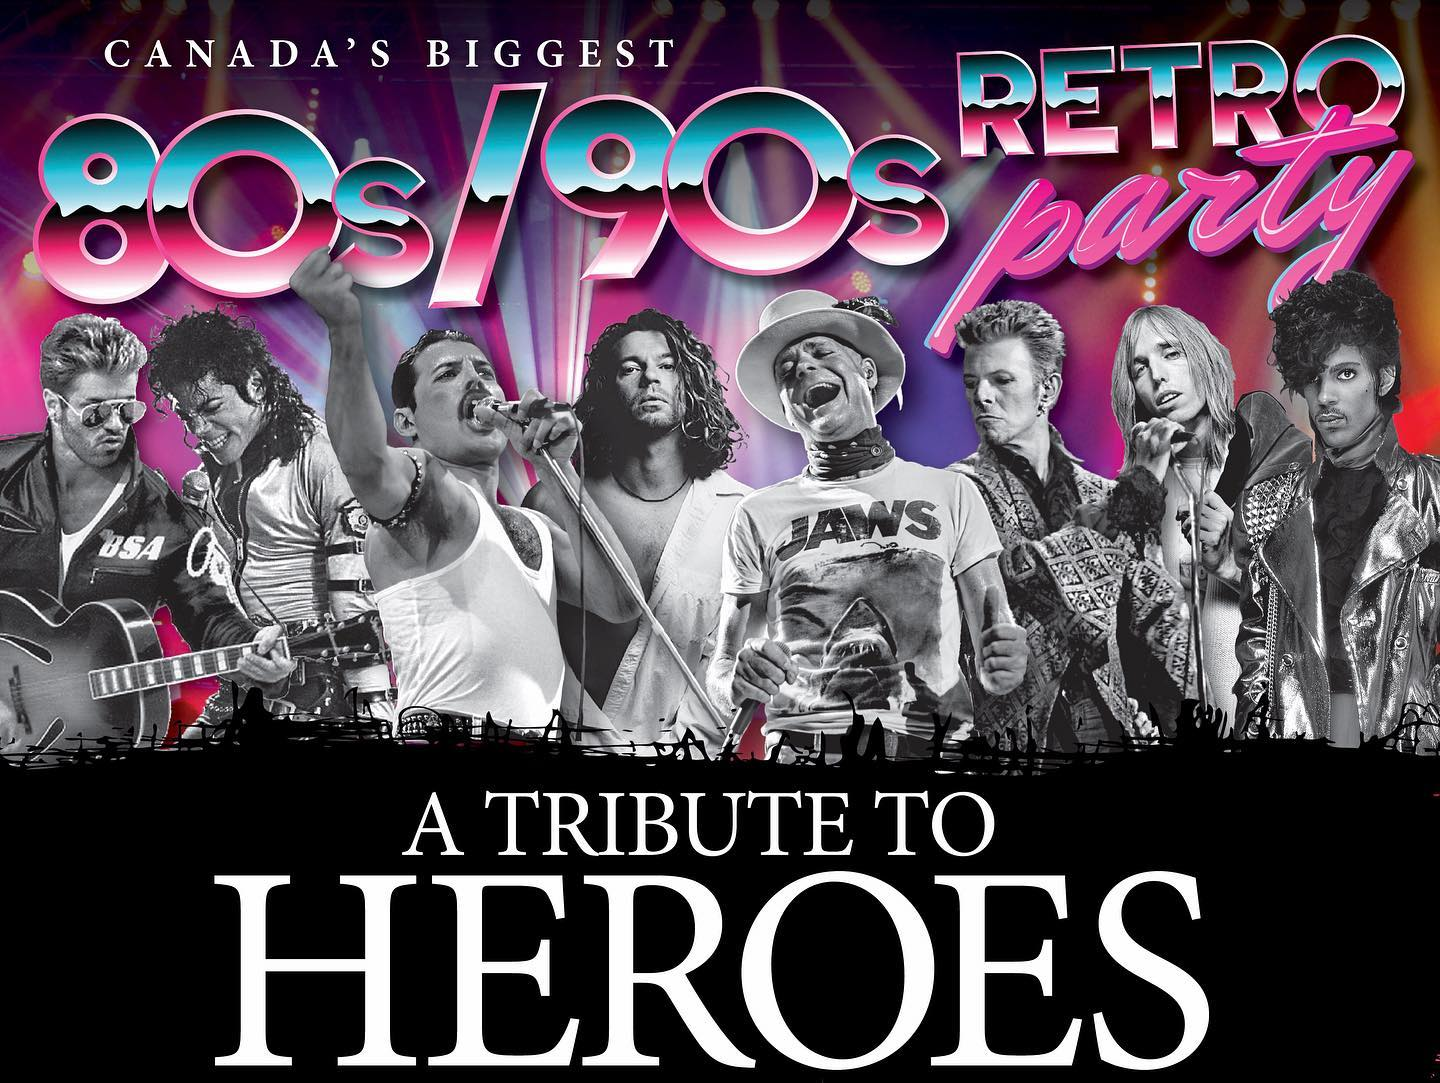 Canada's Biggest Retro 80s/90s Party: A Tribute to Heroes